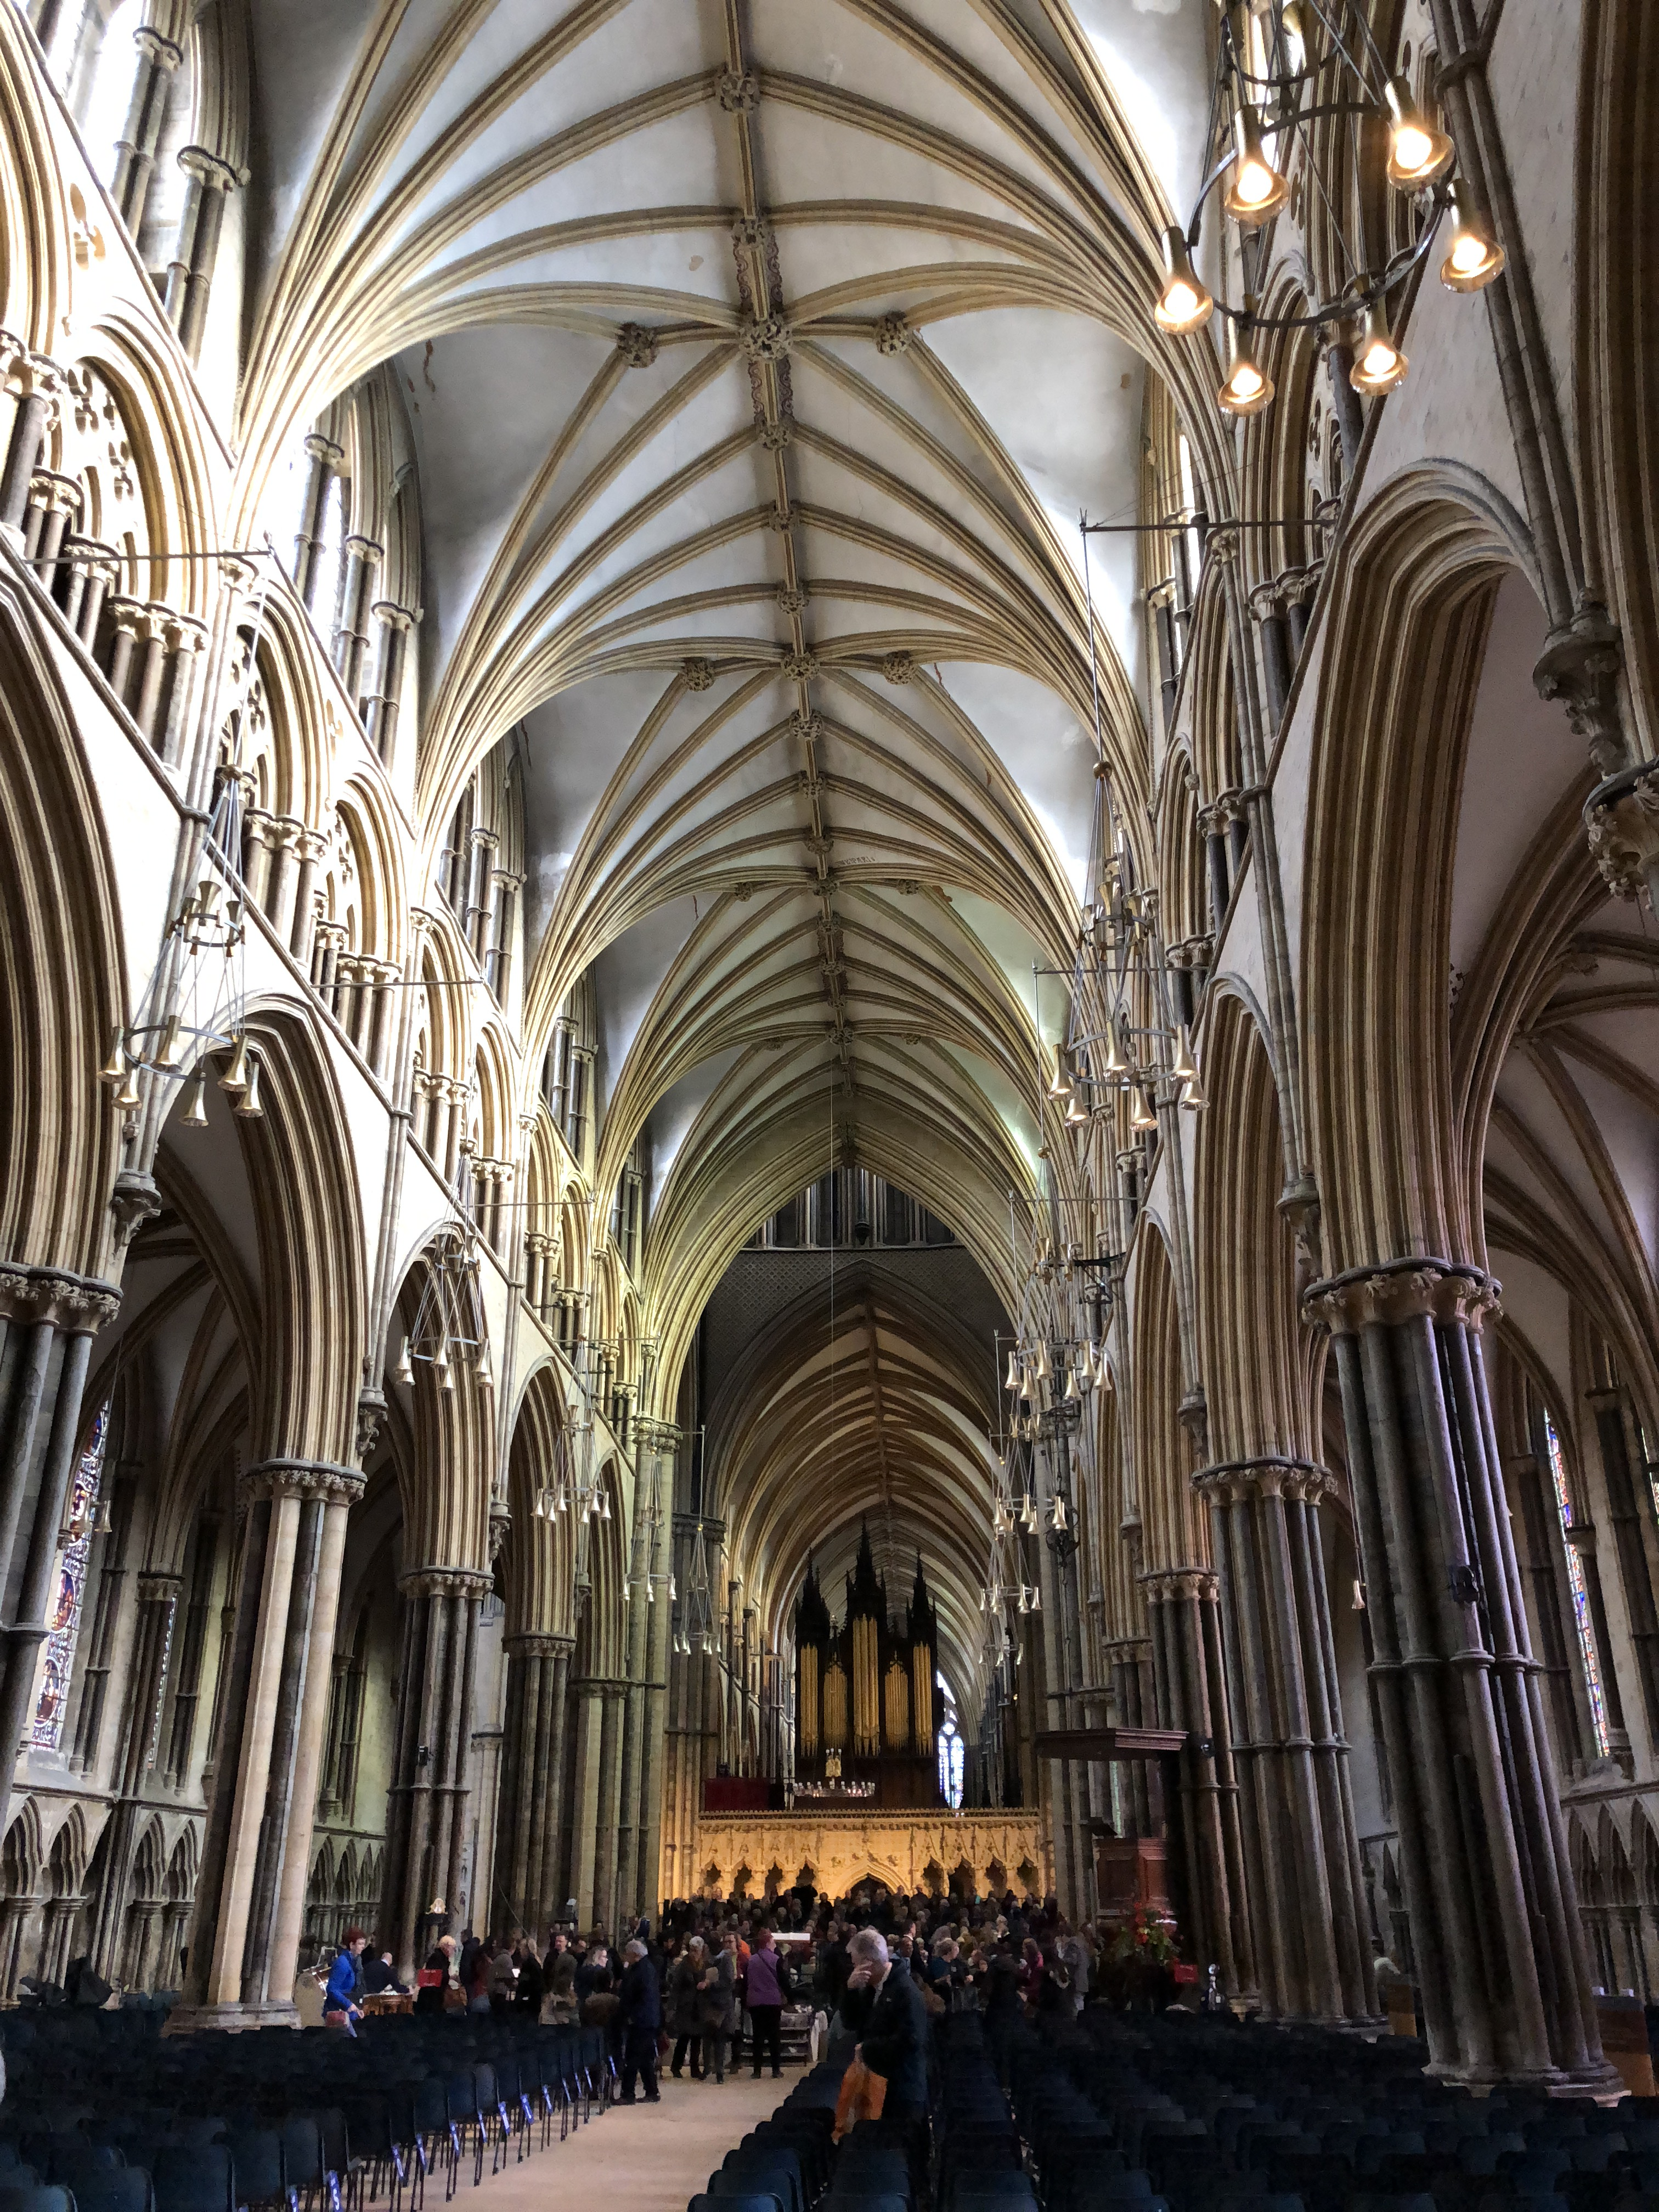 Remembrance Service Choir Practice At Lincoln Cathedral